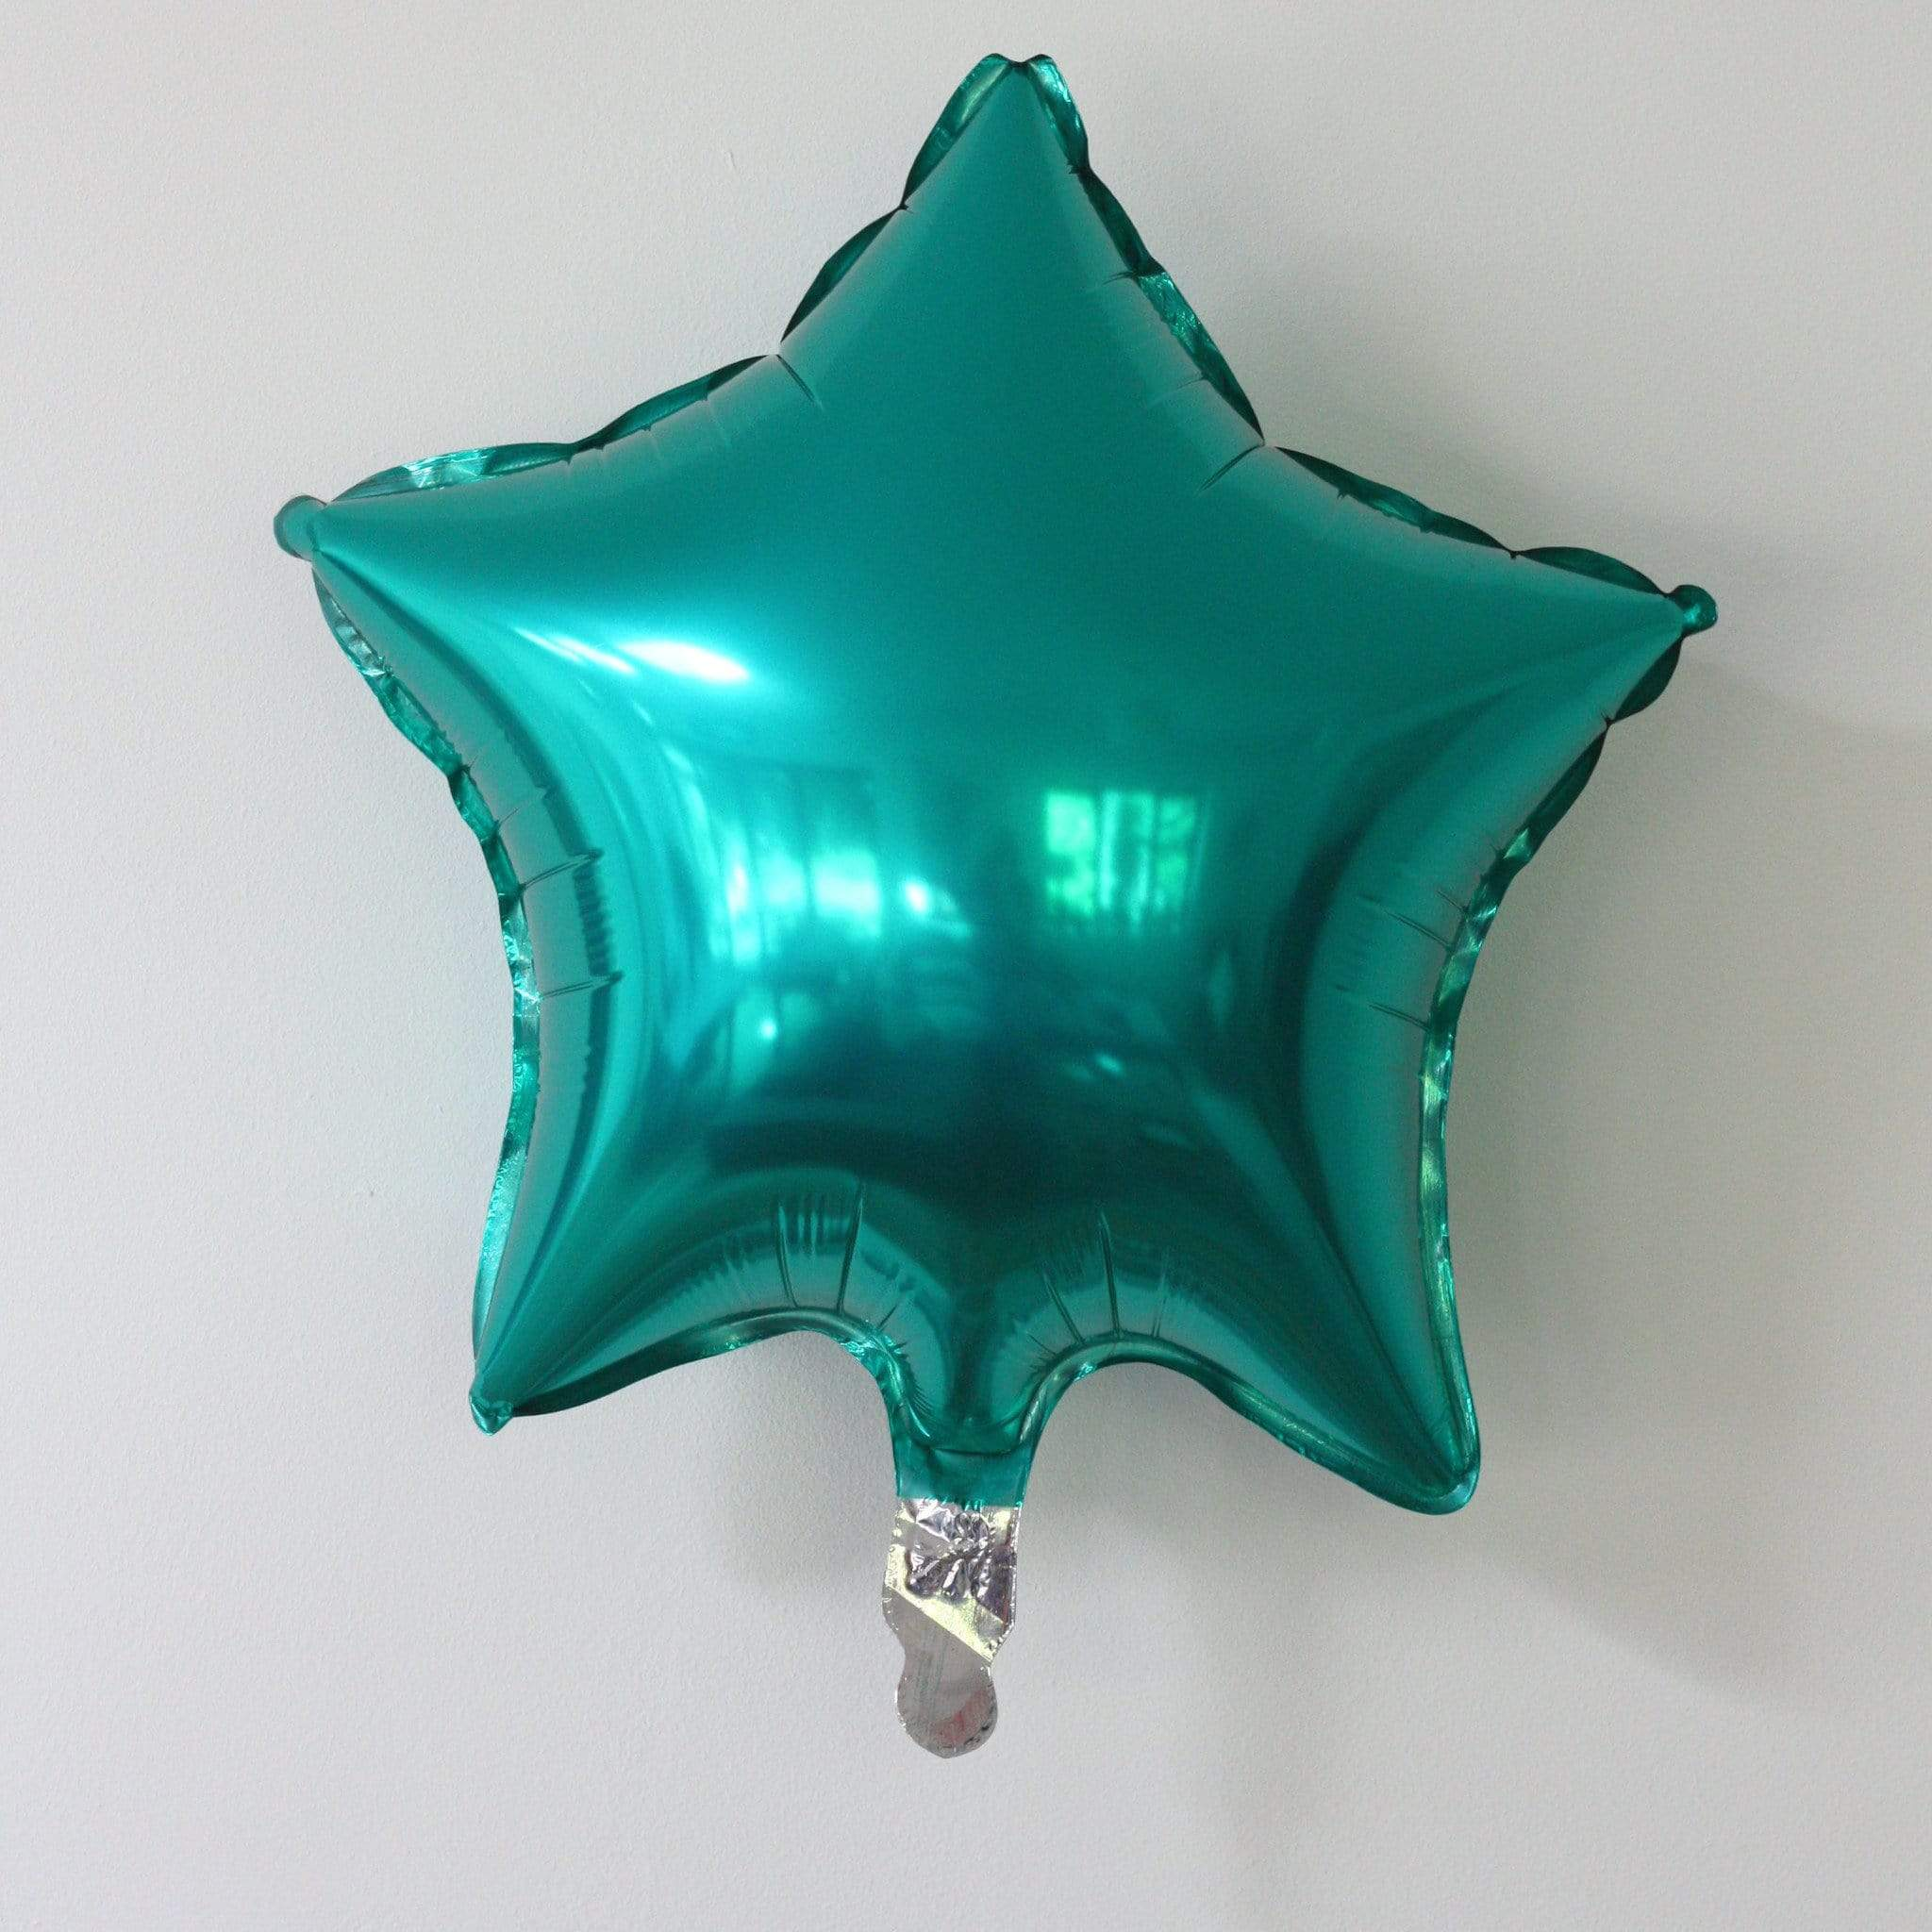 Teal Star Balloon | Teal Helium Balloon | Qualatex